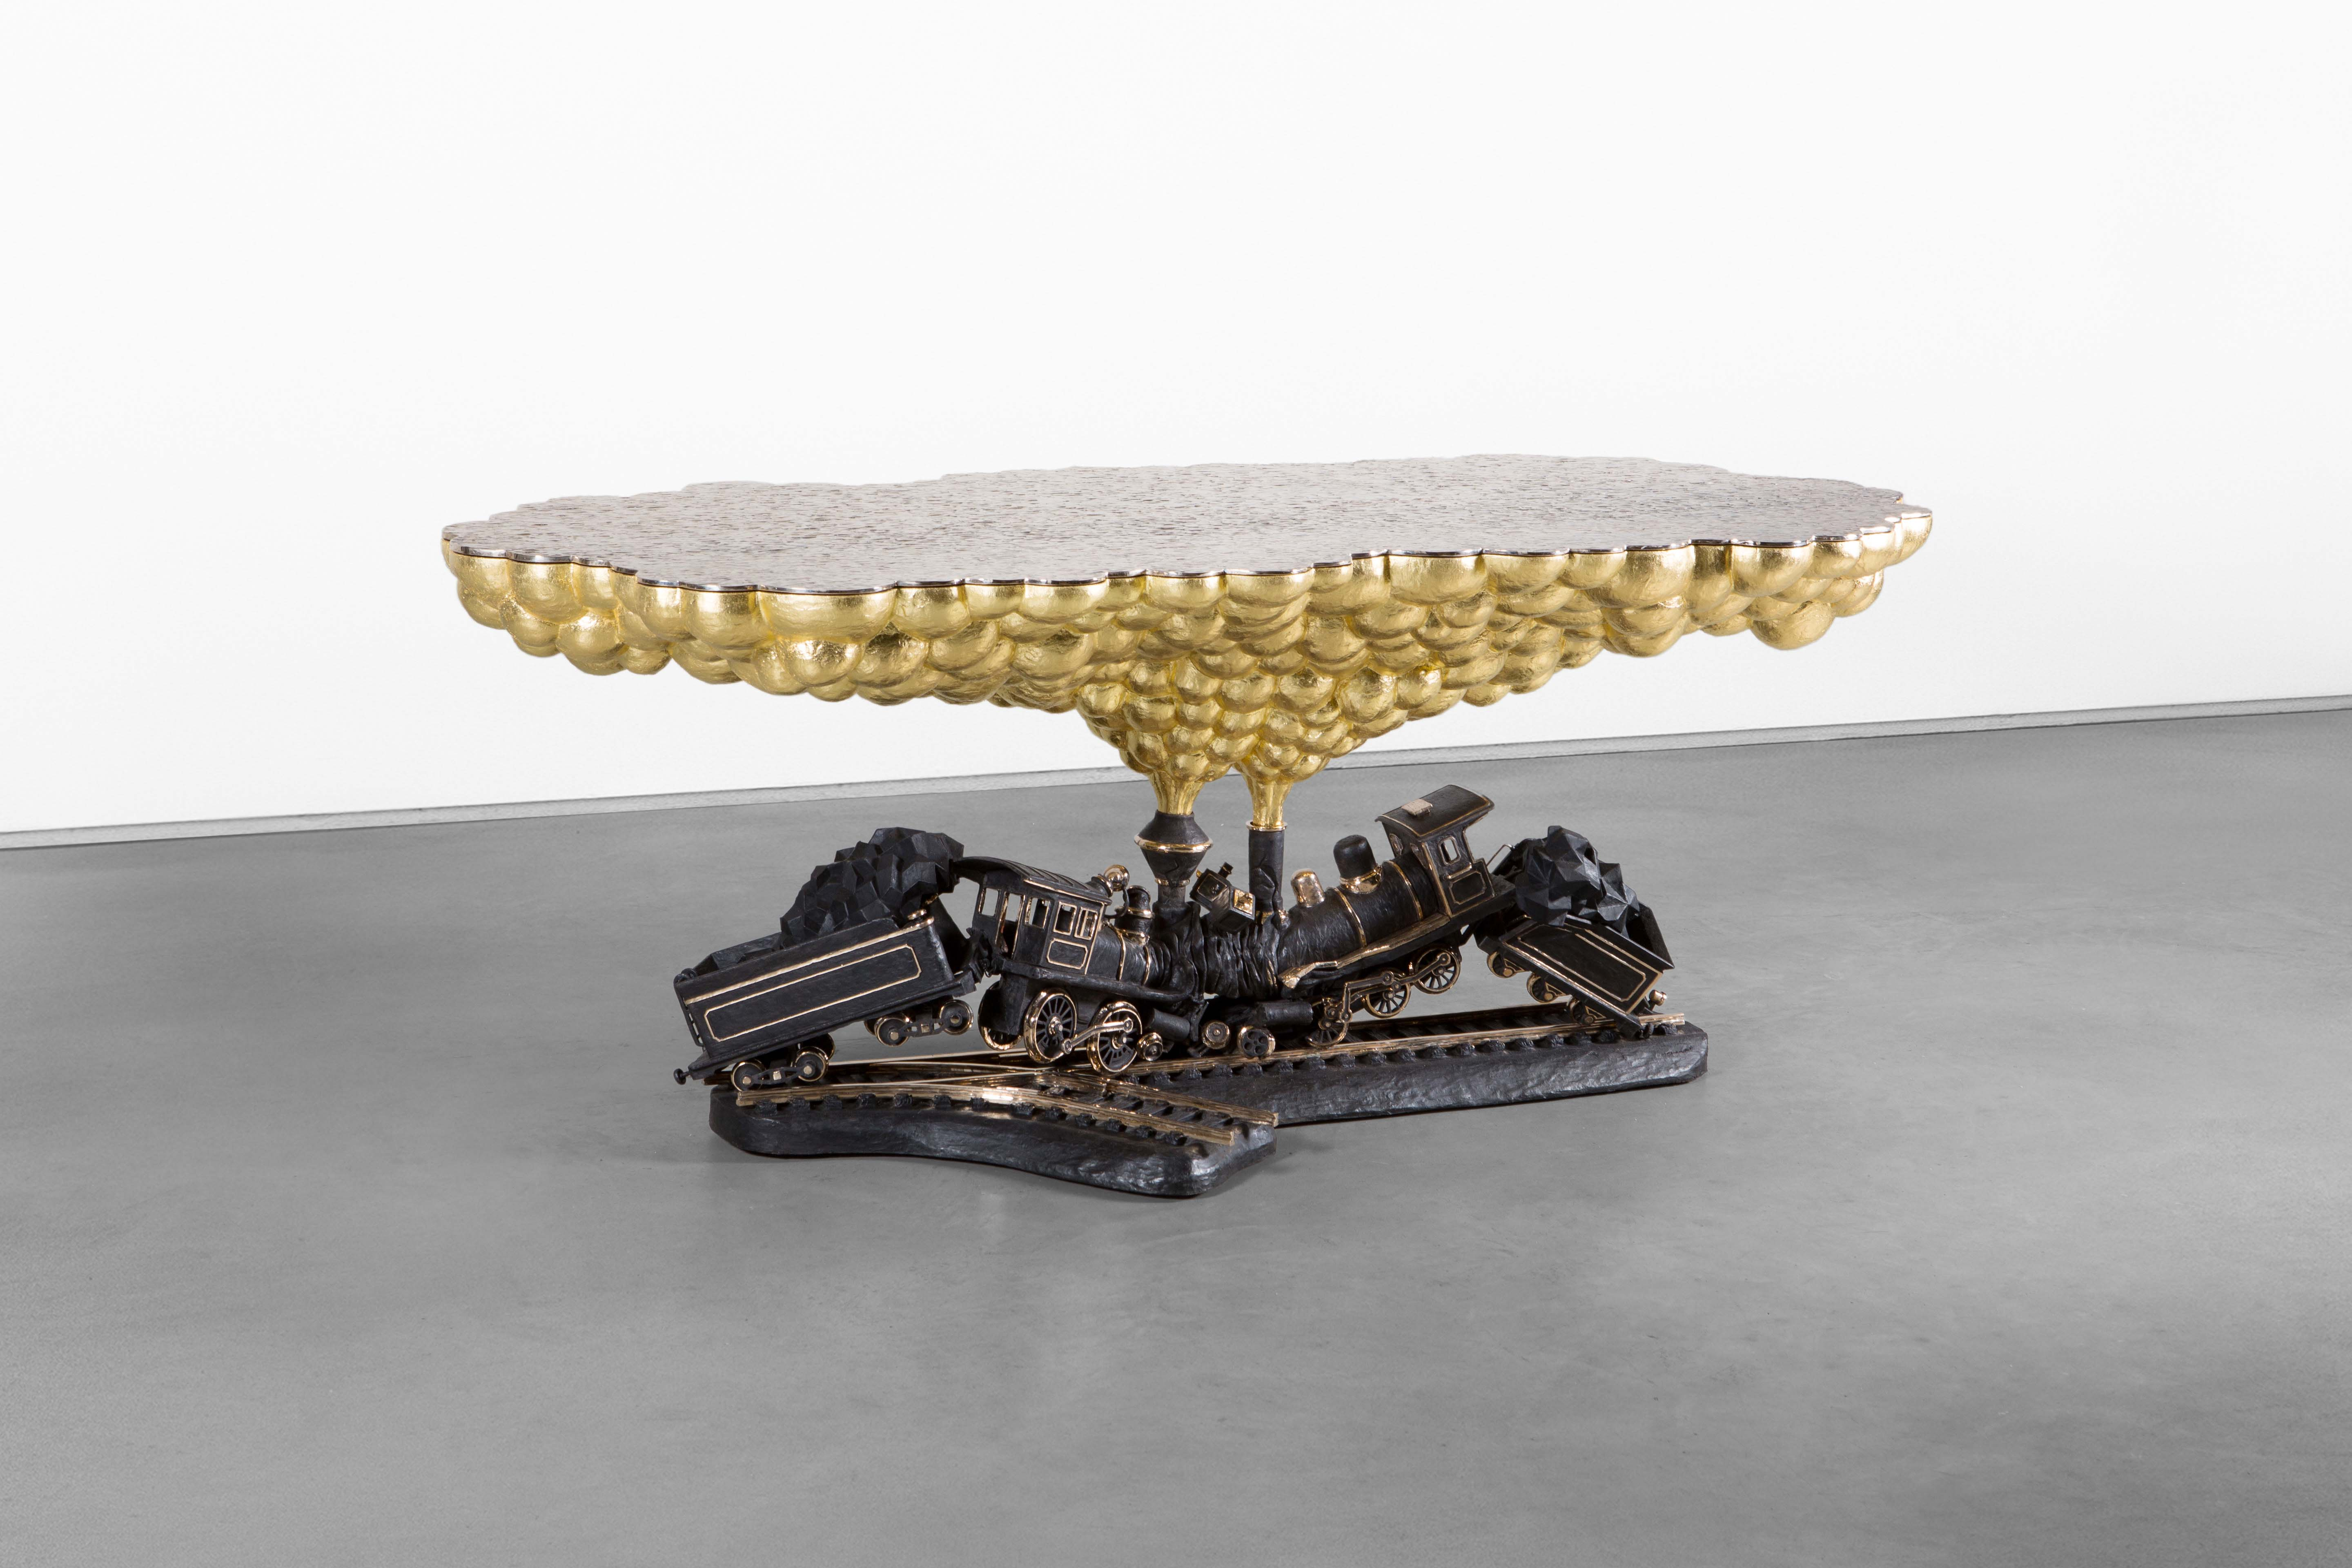 TRAIN CRASH TABLE 2014 POLISHED AND PATINATED BRONZE, 24K GILDING H90 L200 W75 CM / H35.4 L78.7 W29.5 IN LIMITED EDITION OF 8 + 4